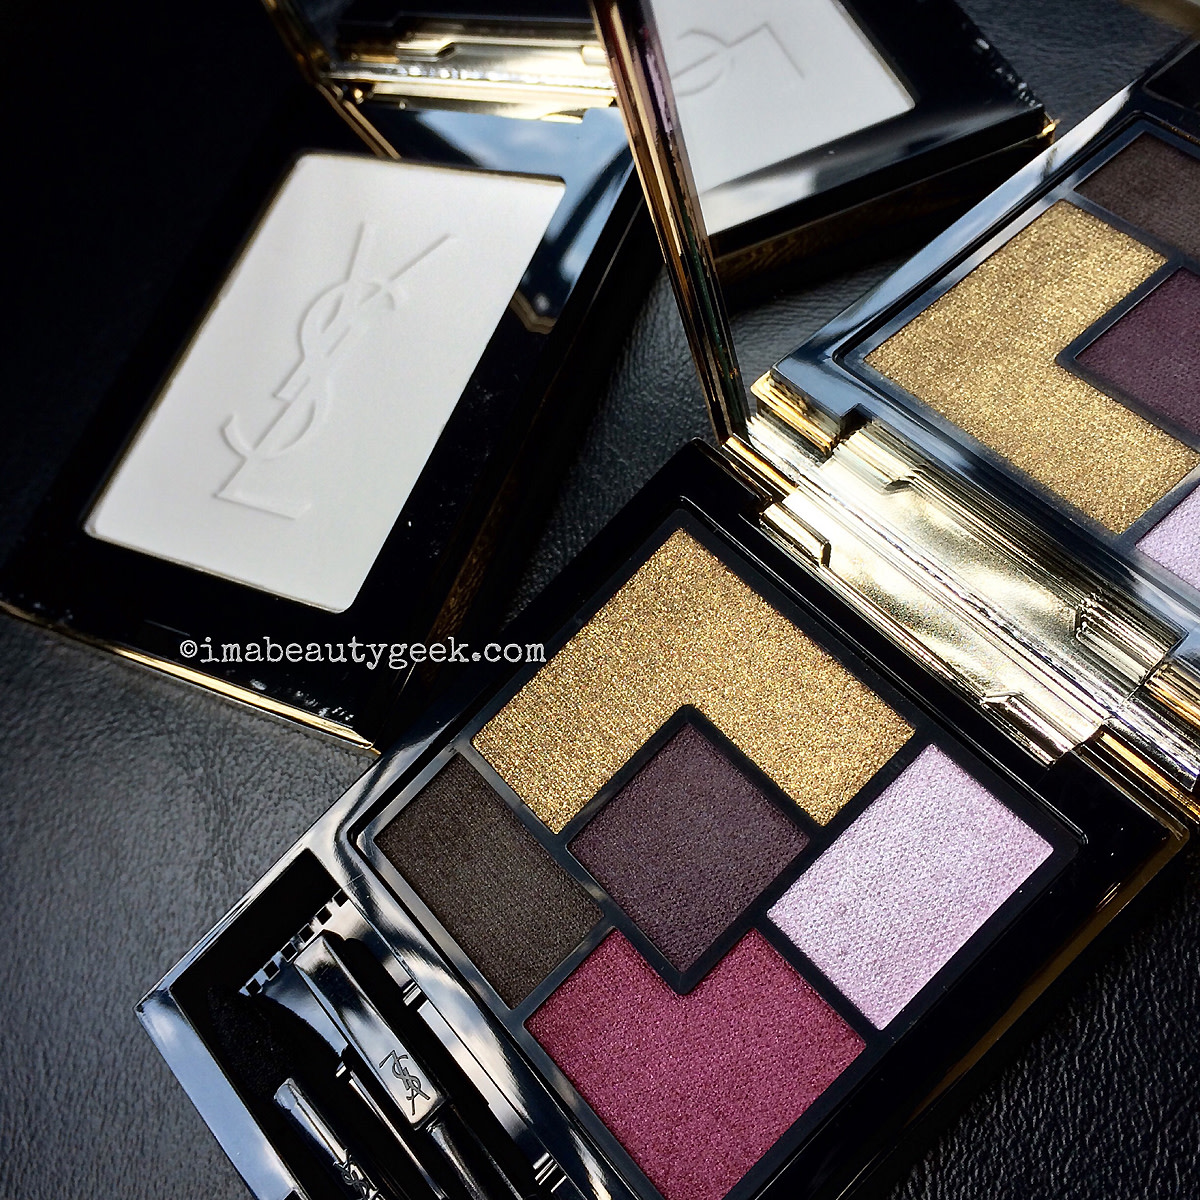 YSL Pretty Metal Fall 2015_Matte Radiance Powder and Metal Clash Eyeshadow Palette